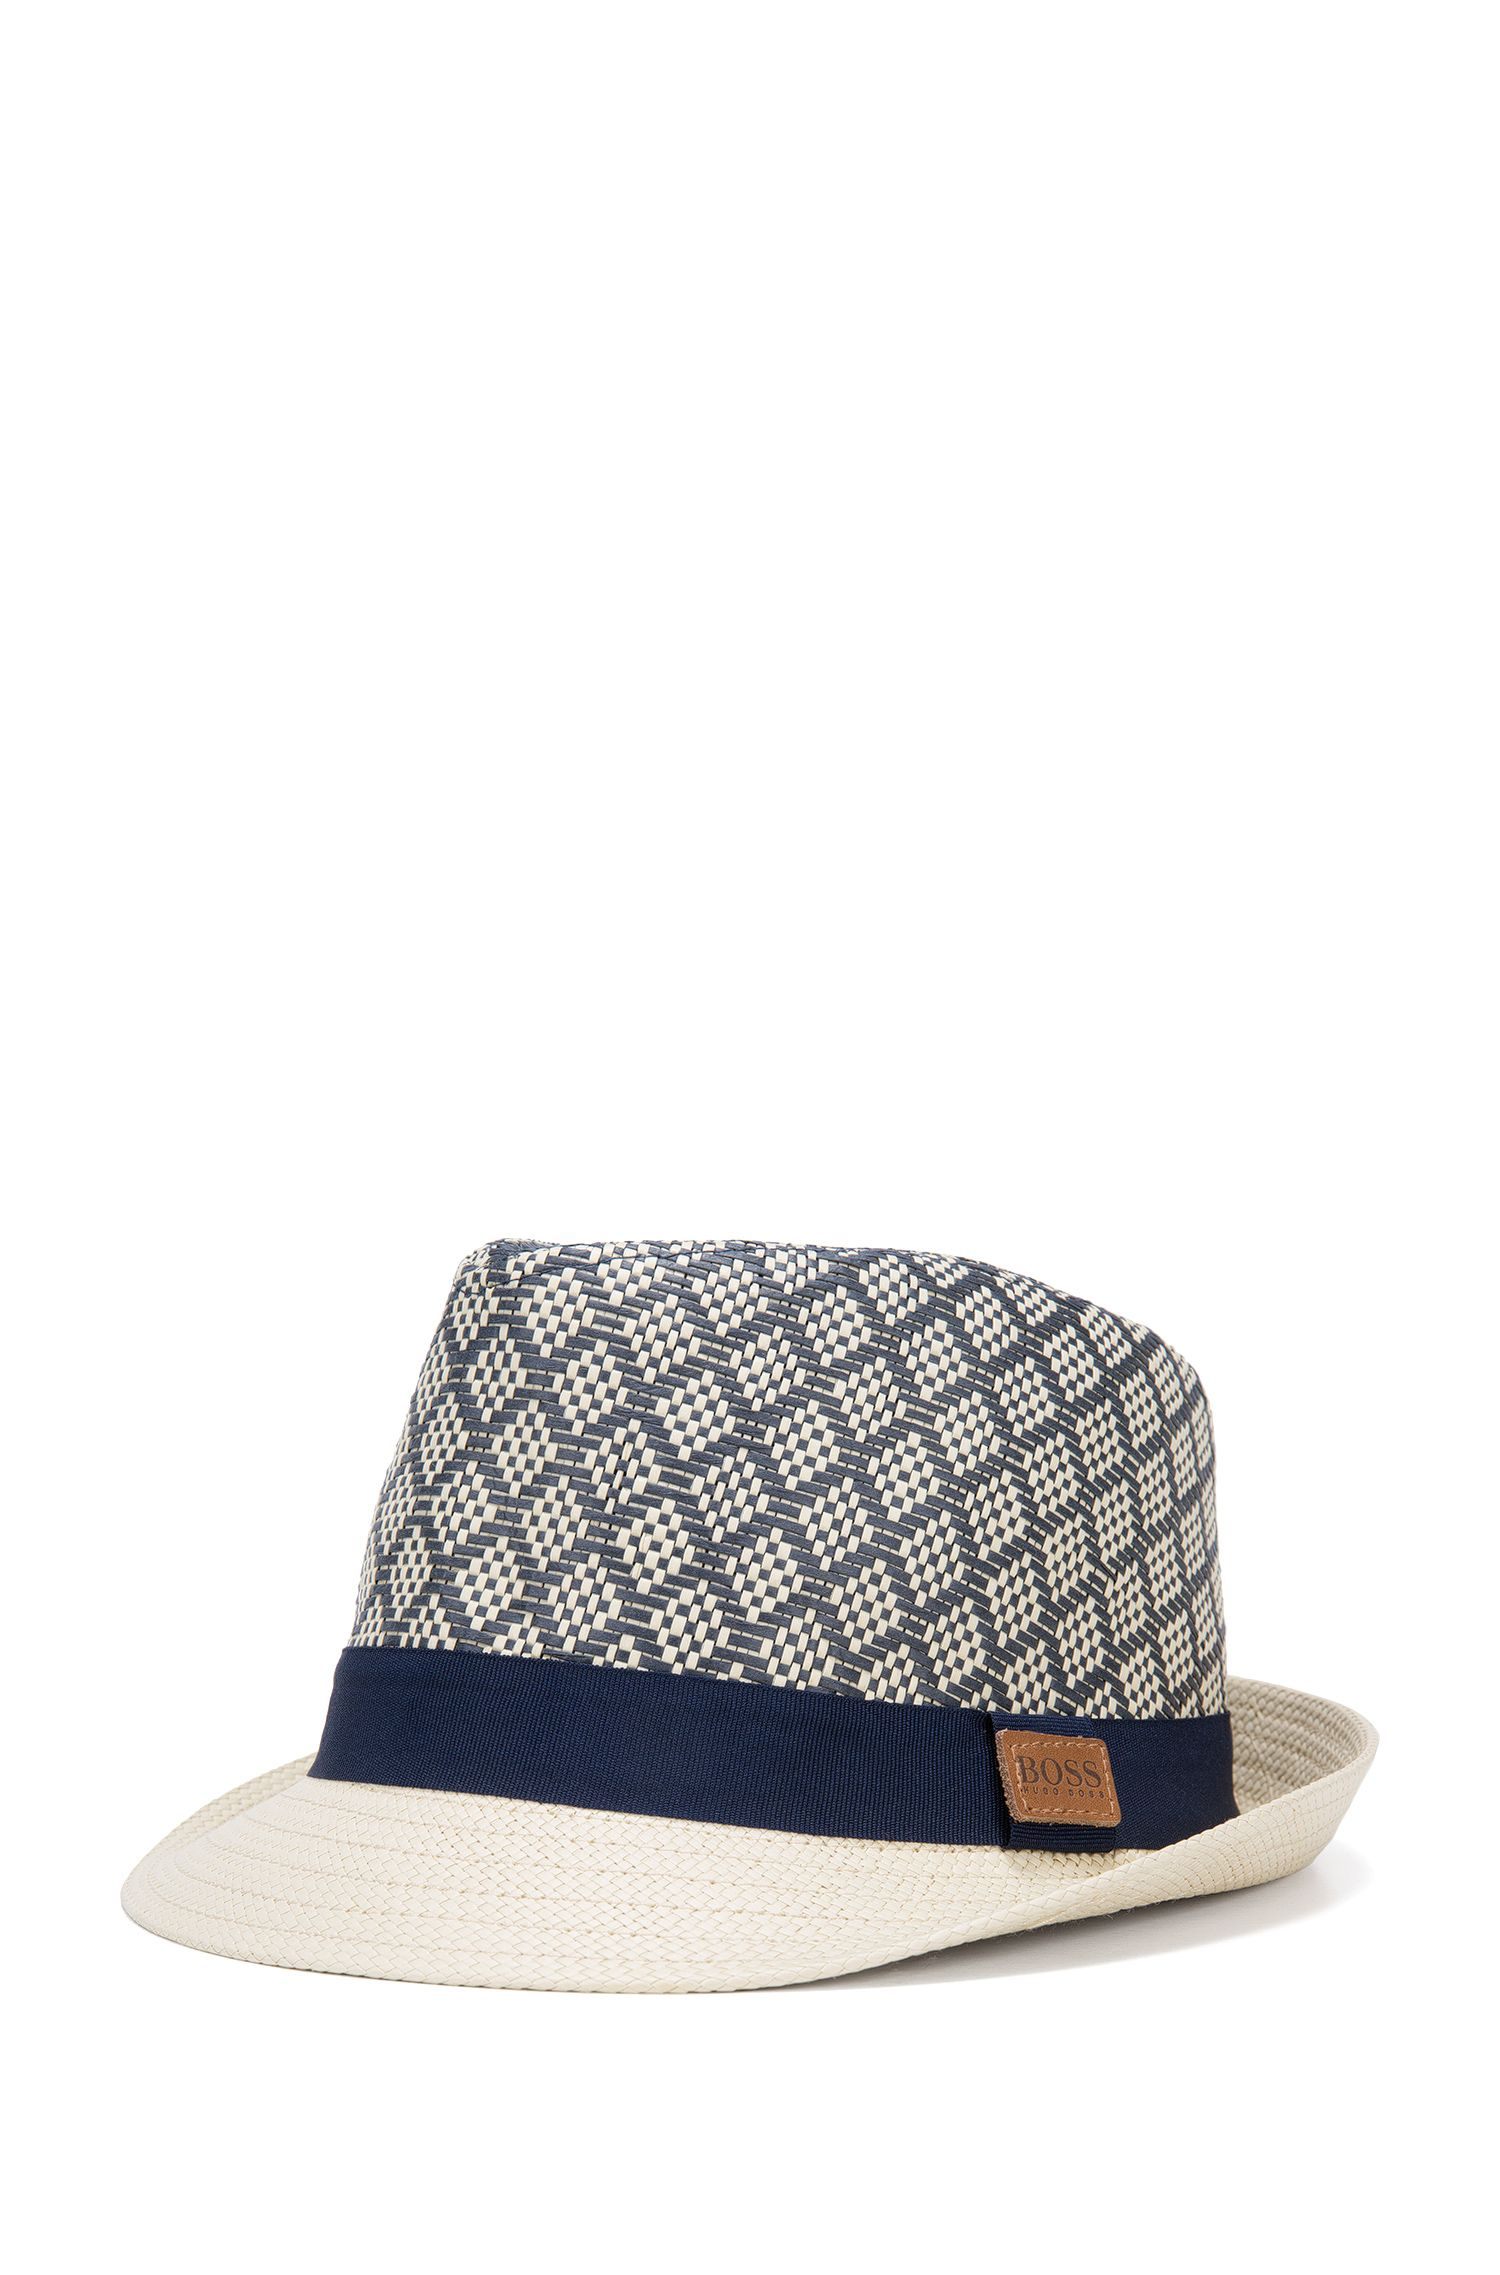 Kid's hat in paper straw with contrasting hatband: 'J21178'